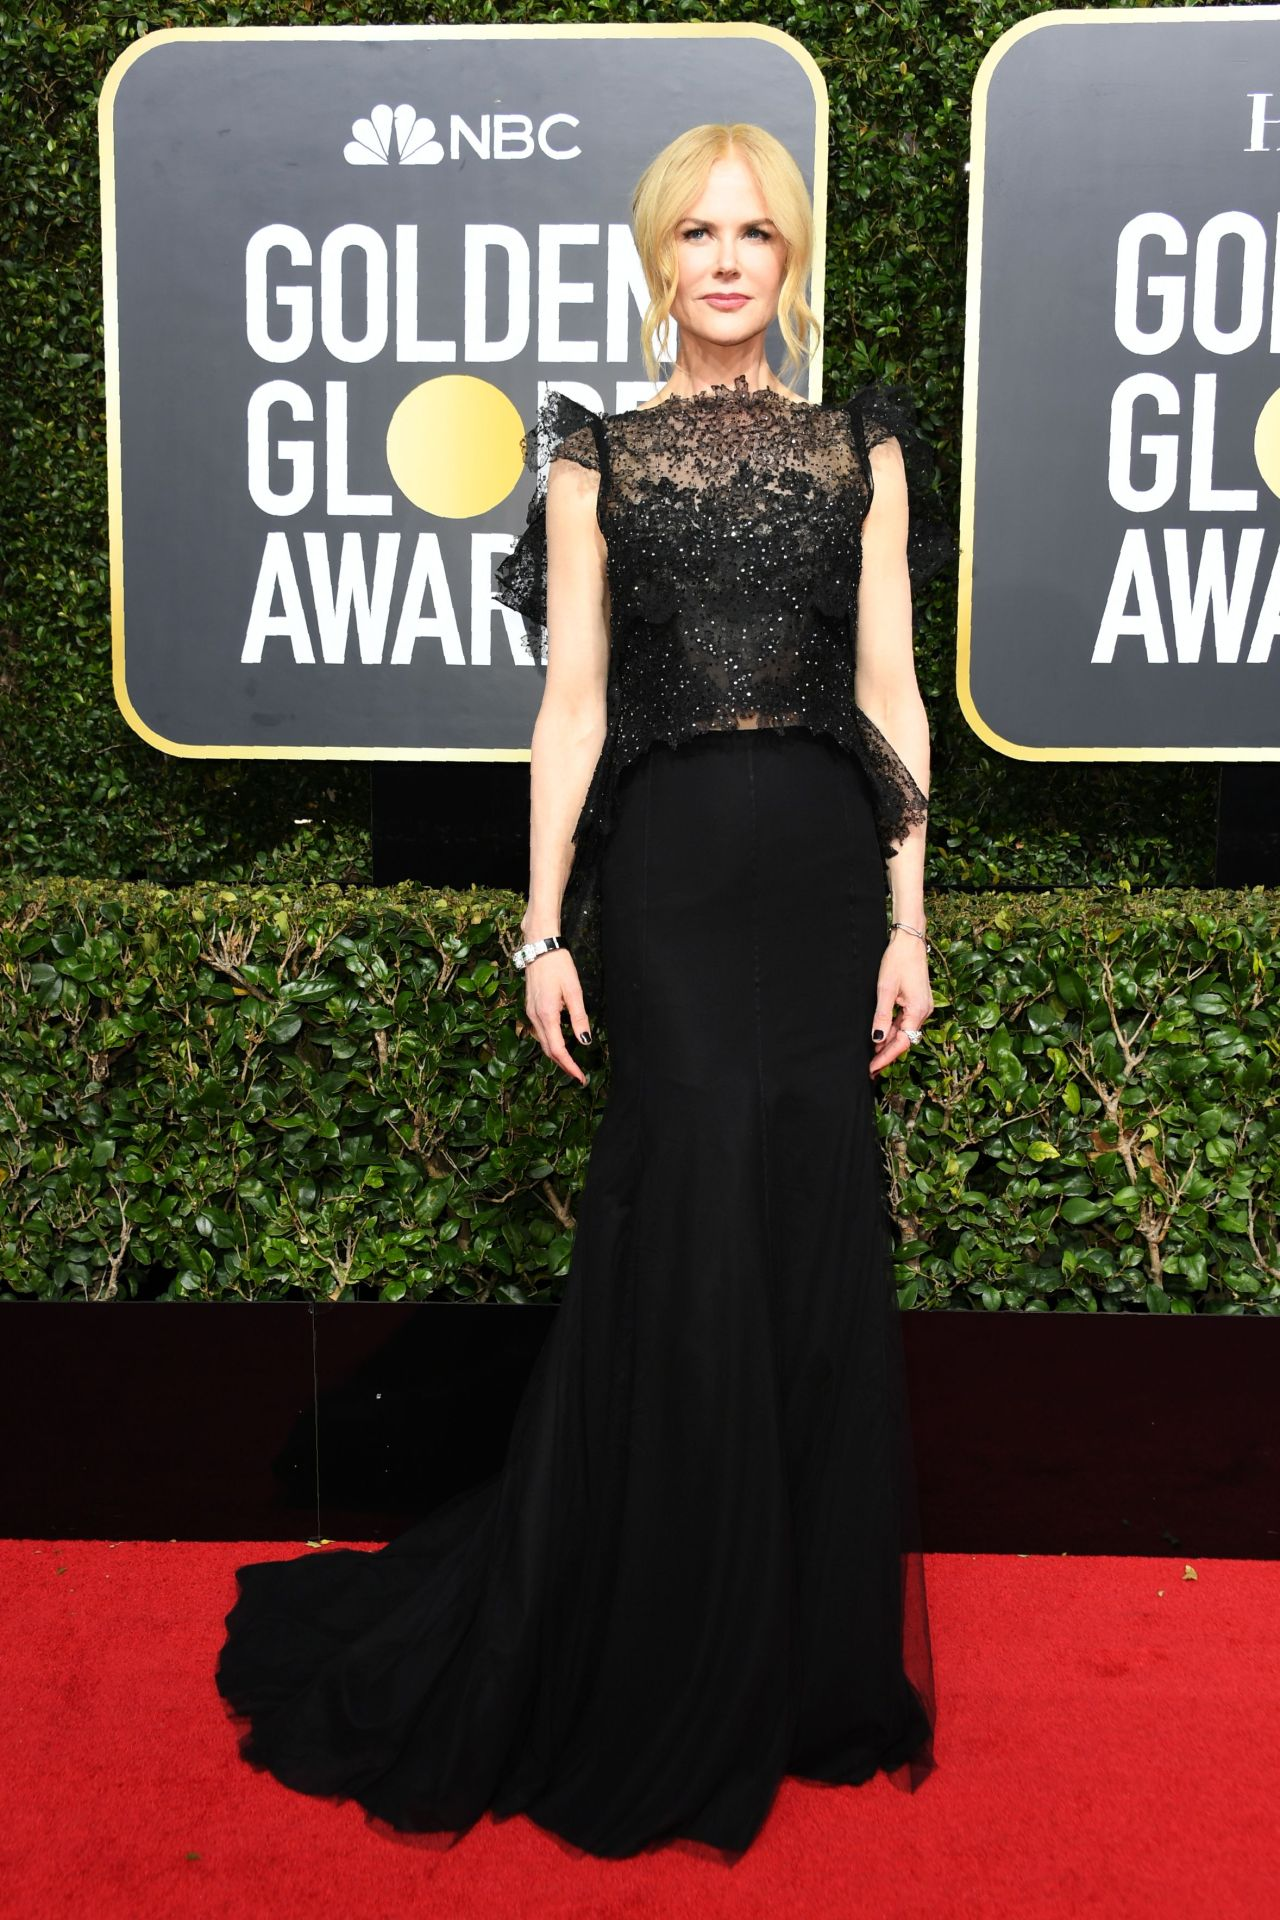 c763590421 This is the dress code for the 2019 Golden Globes. Nicole Kidman ...